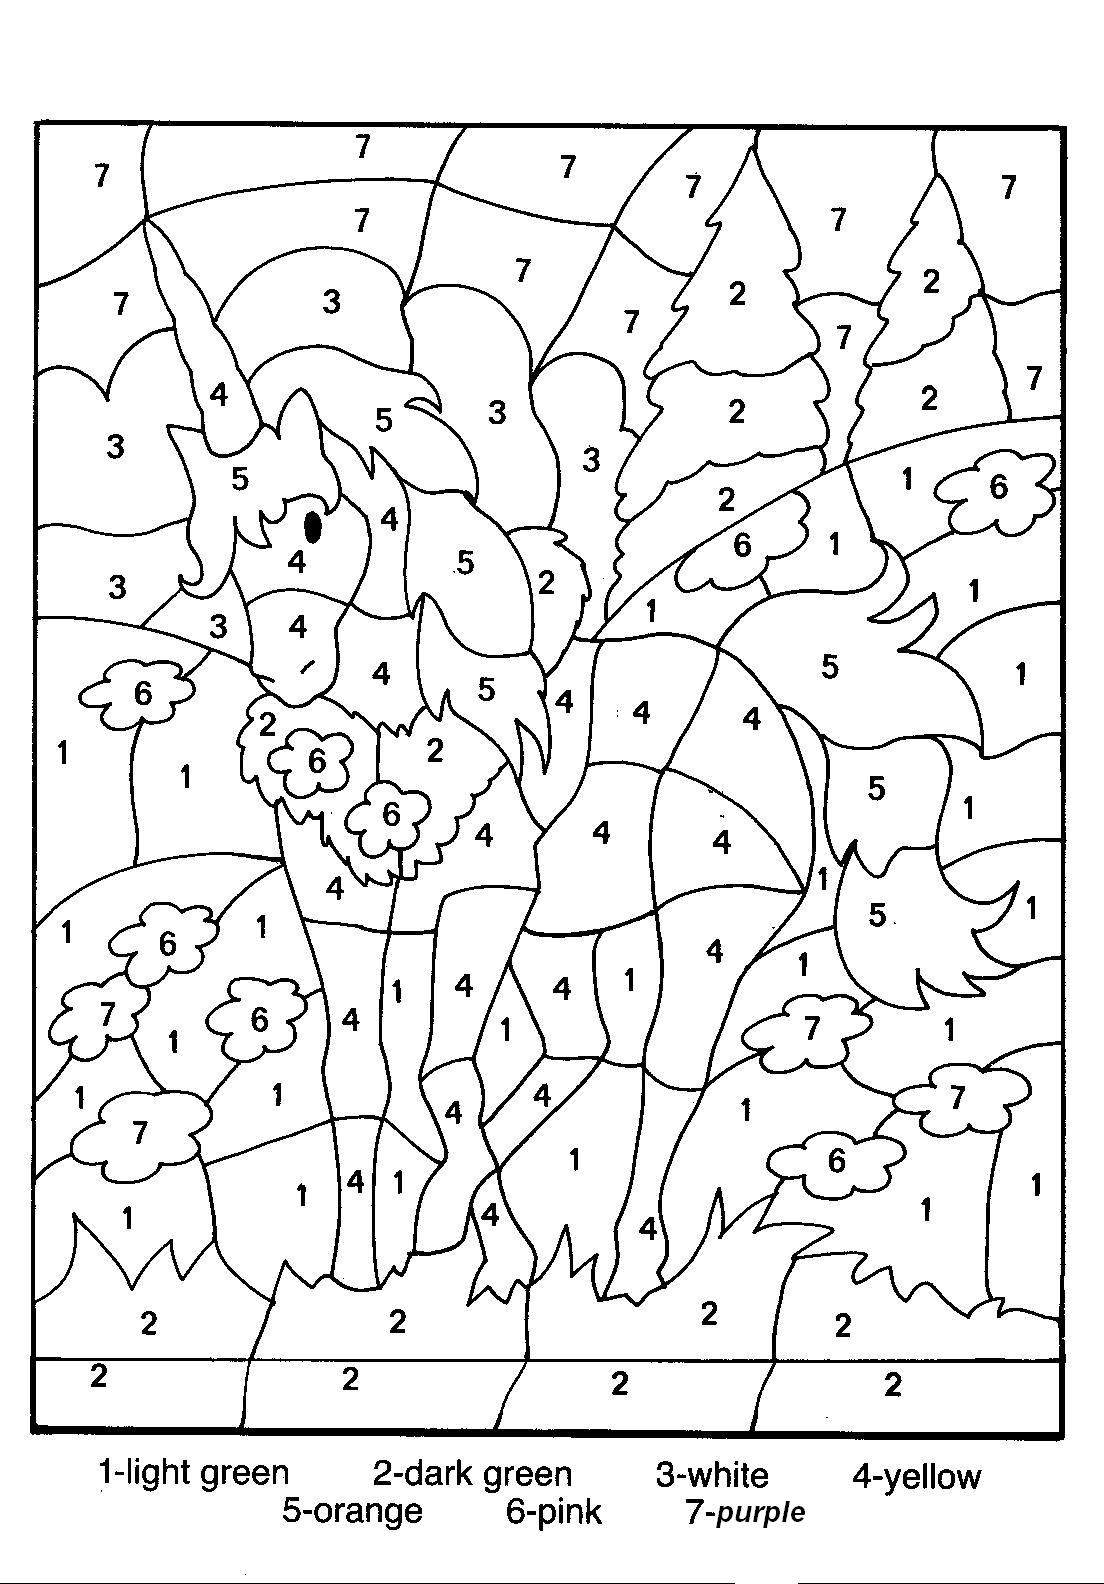 free printable color by number - Coloring Pages With Numbers